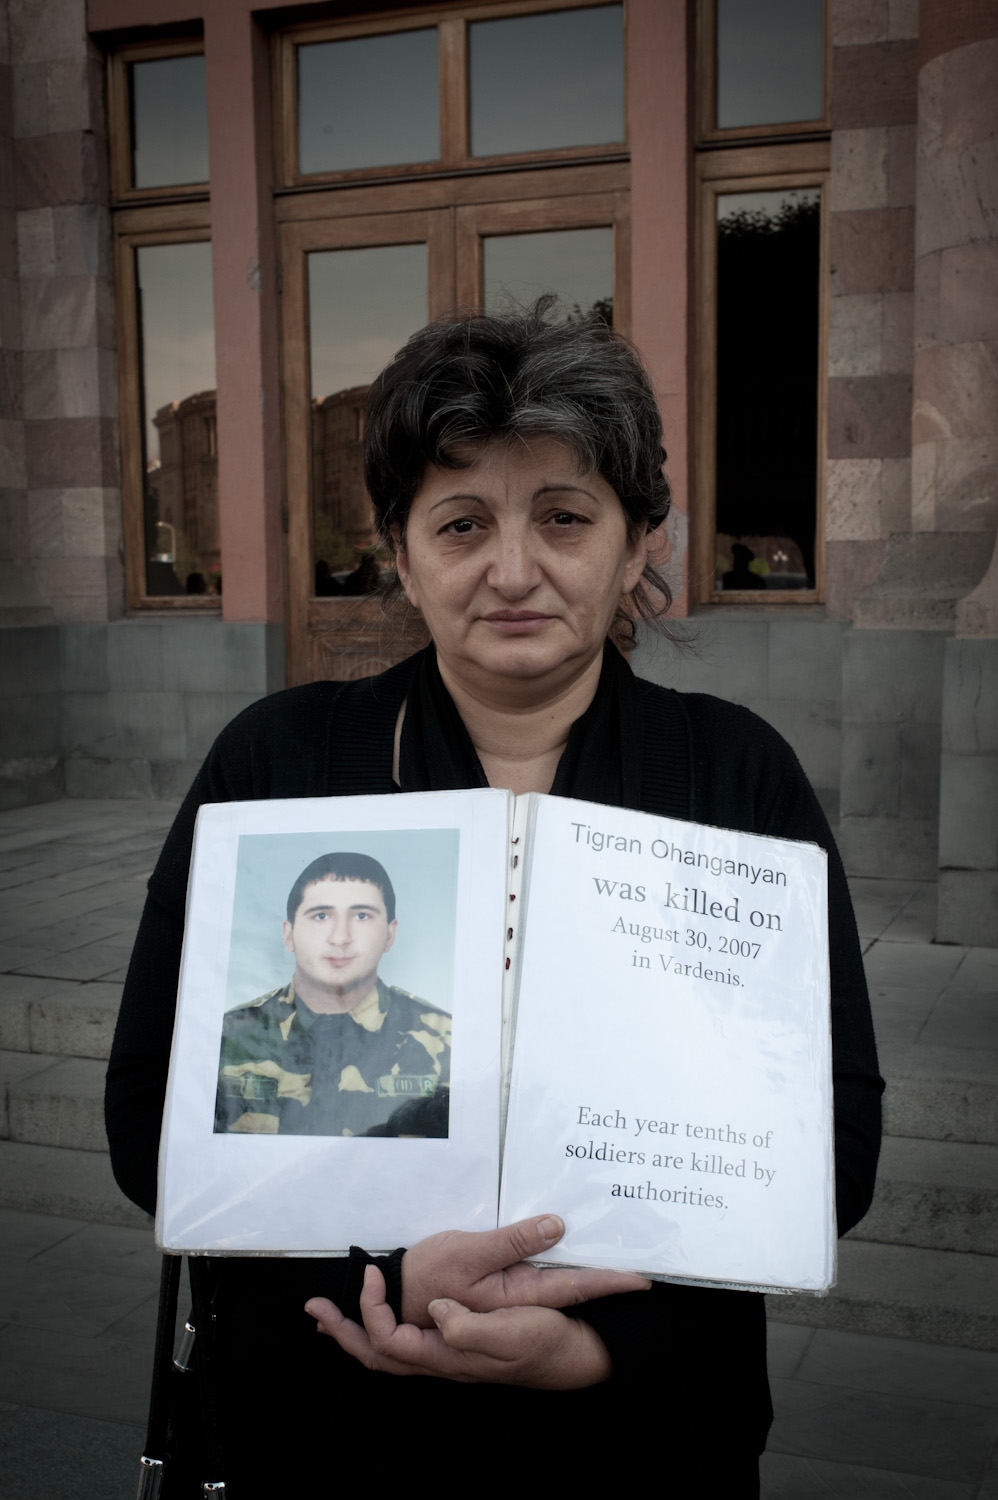 Gohar Ohanjayan's son Tigran died in 2007 while serving. During his last three months of service he complained that the commanders would hit him. The military says Tigran ran into a live wire and was electrocuted. The Ohanjanyan family believes their son was killed.